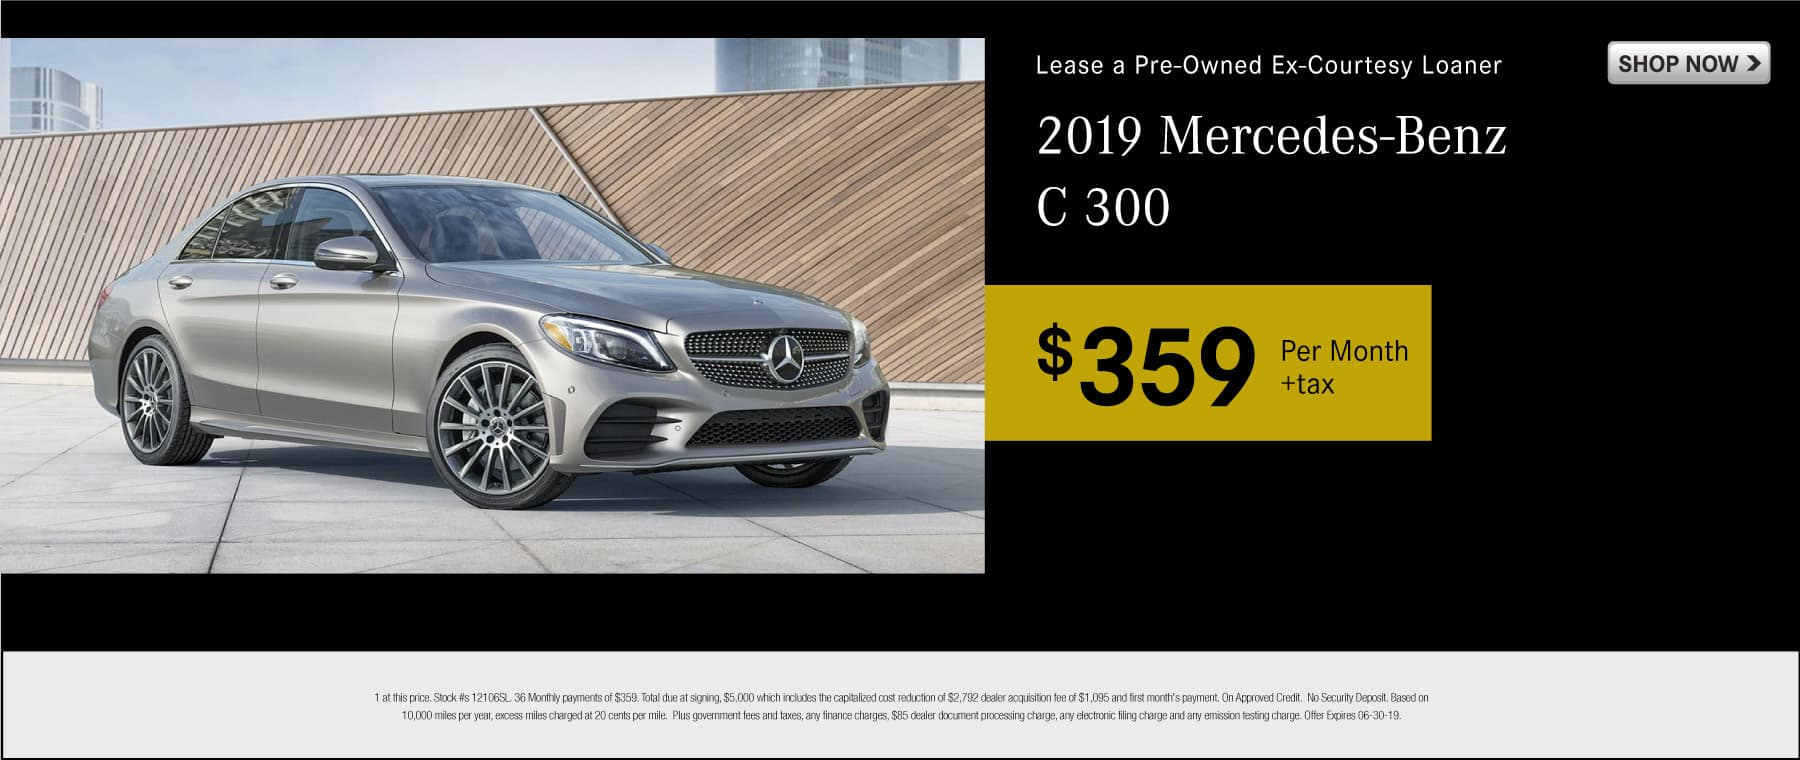 Lease a pre-owned ex-courtesy loaner 2019 Mercedes-Benz C 300